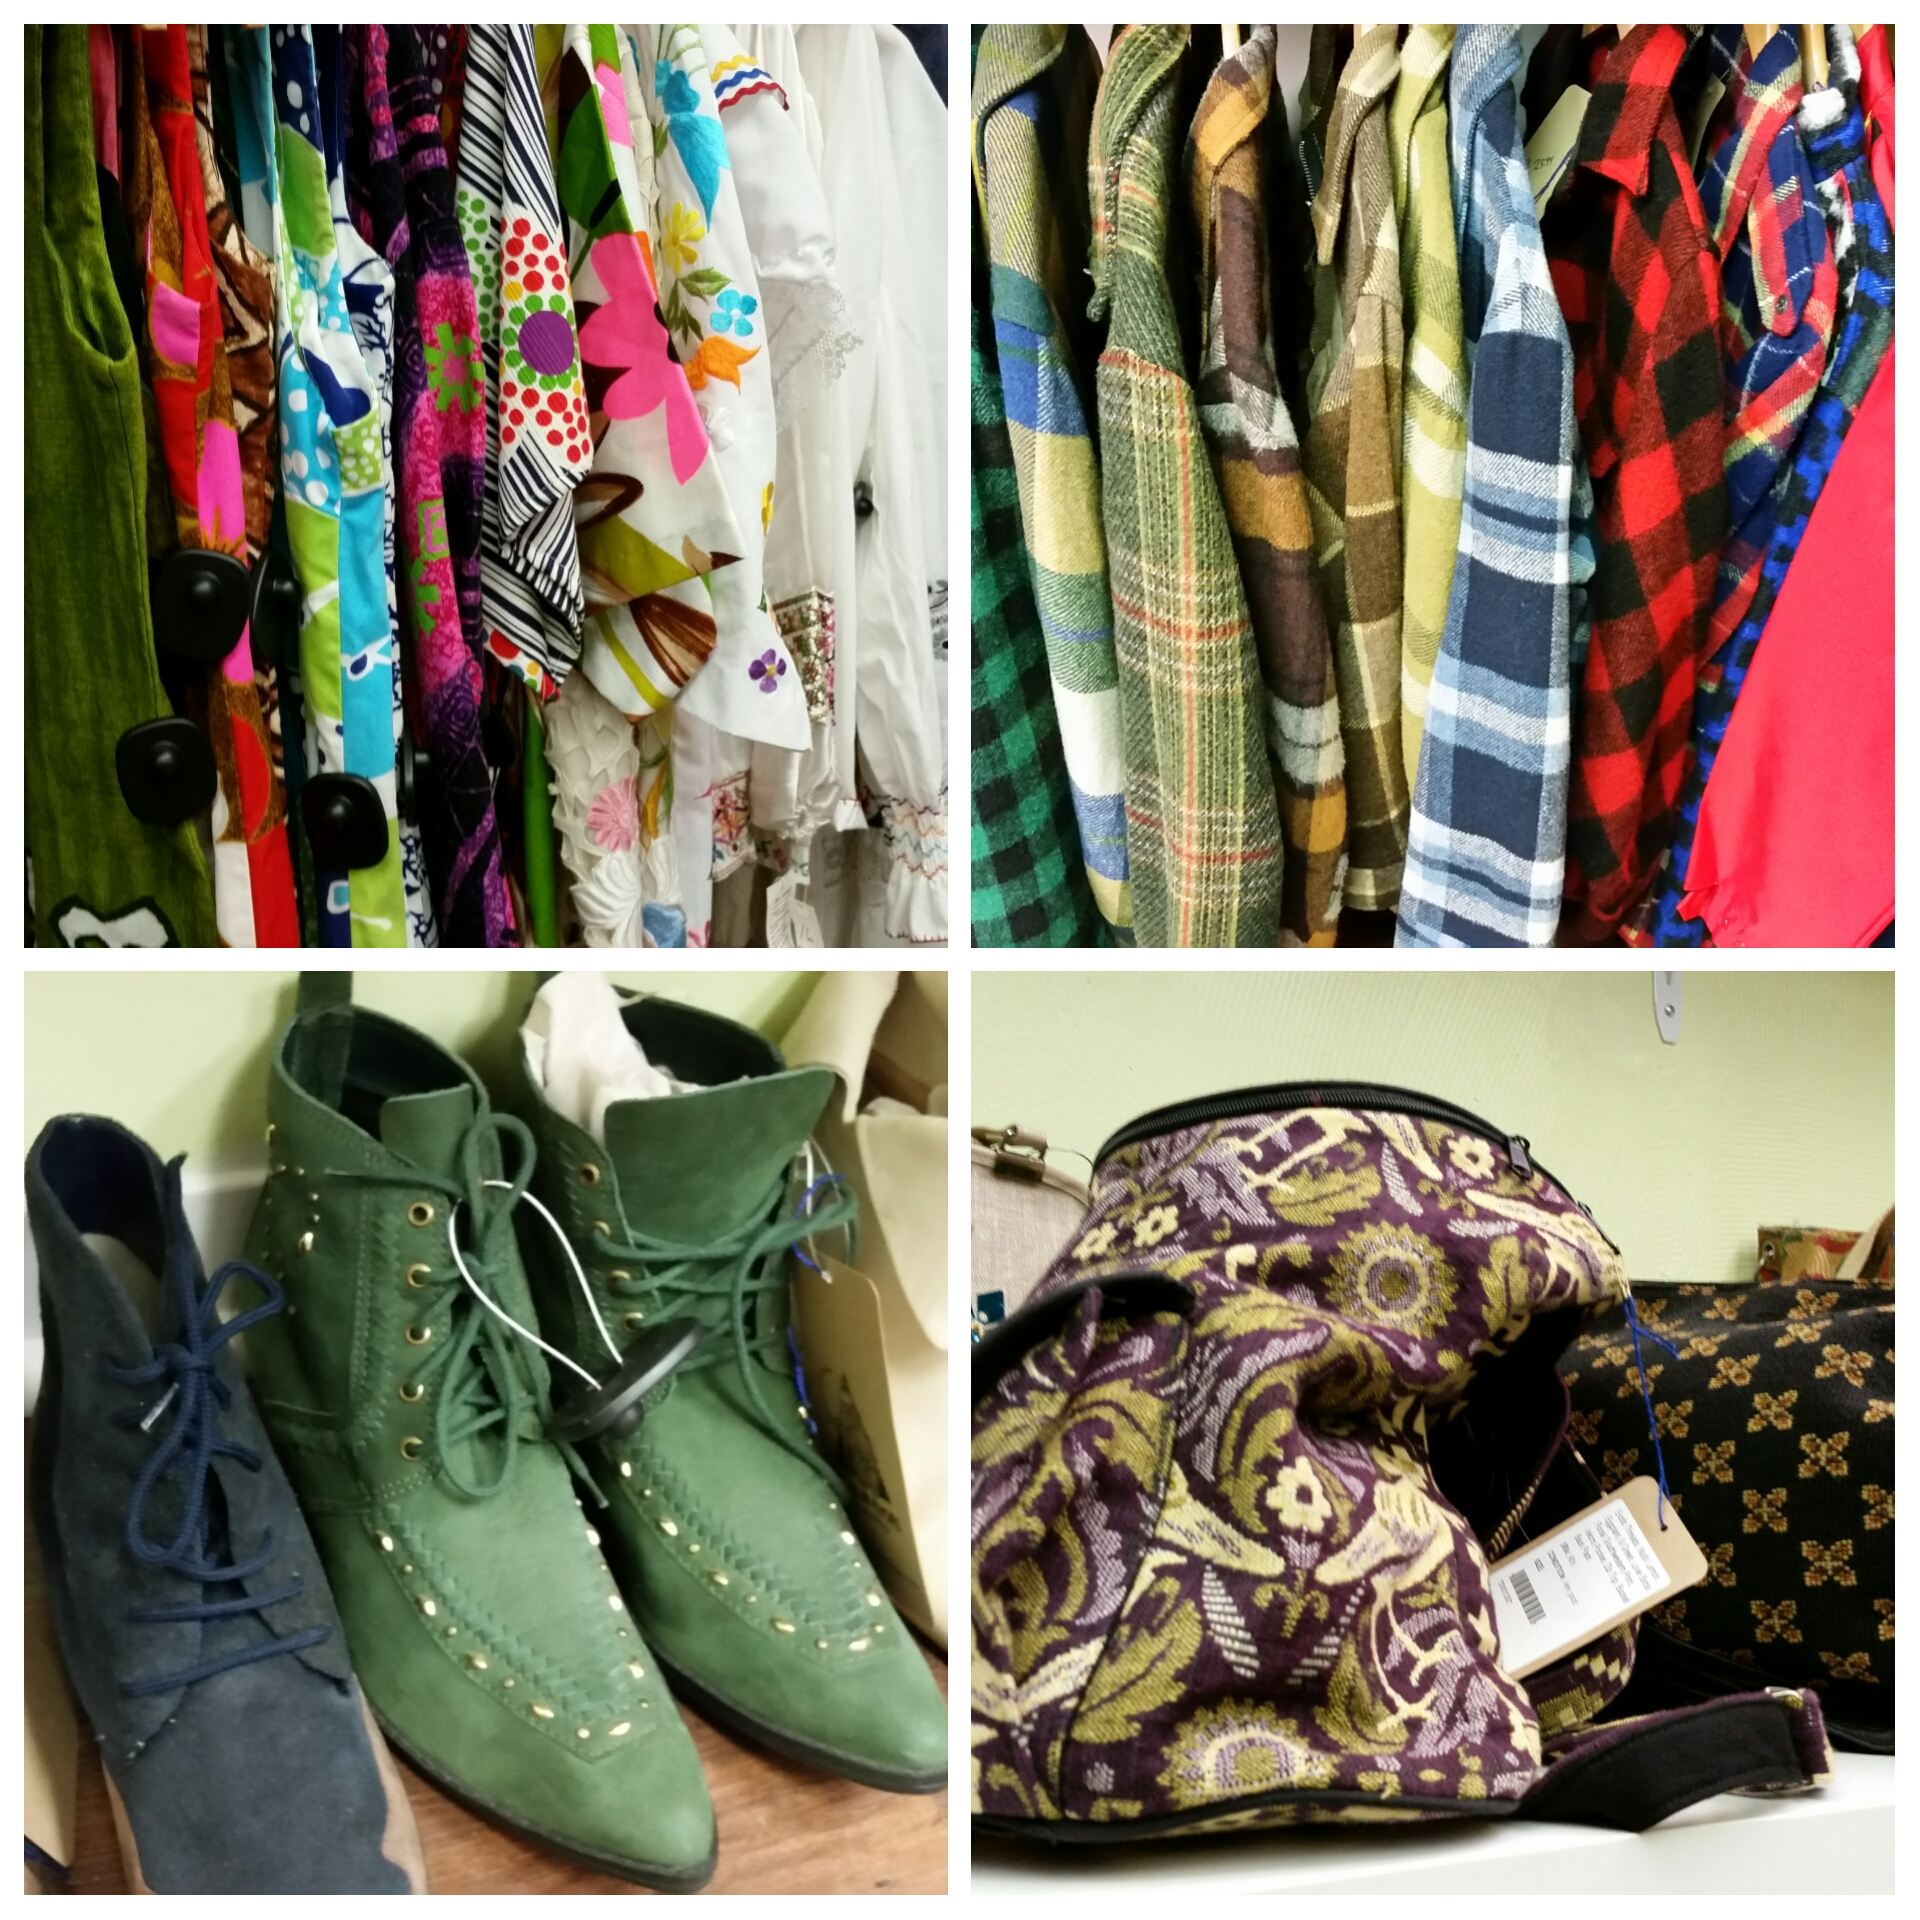 Clockwise from upper left: an assortment of colorful vintage dresses, dress your dude as a lumberjack with a big assortment of men's plaid shirts, cool purses, green boots that I fell in love with but did not buy (maybe you should?)